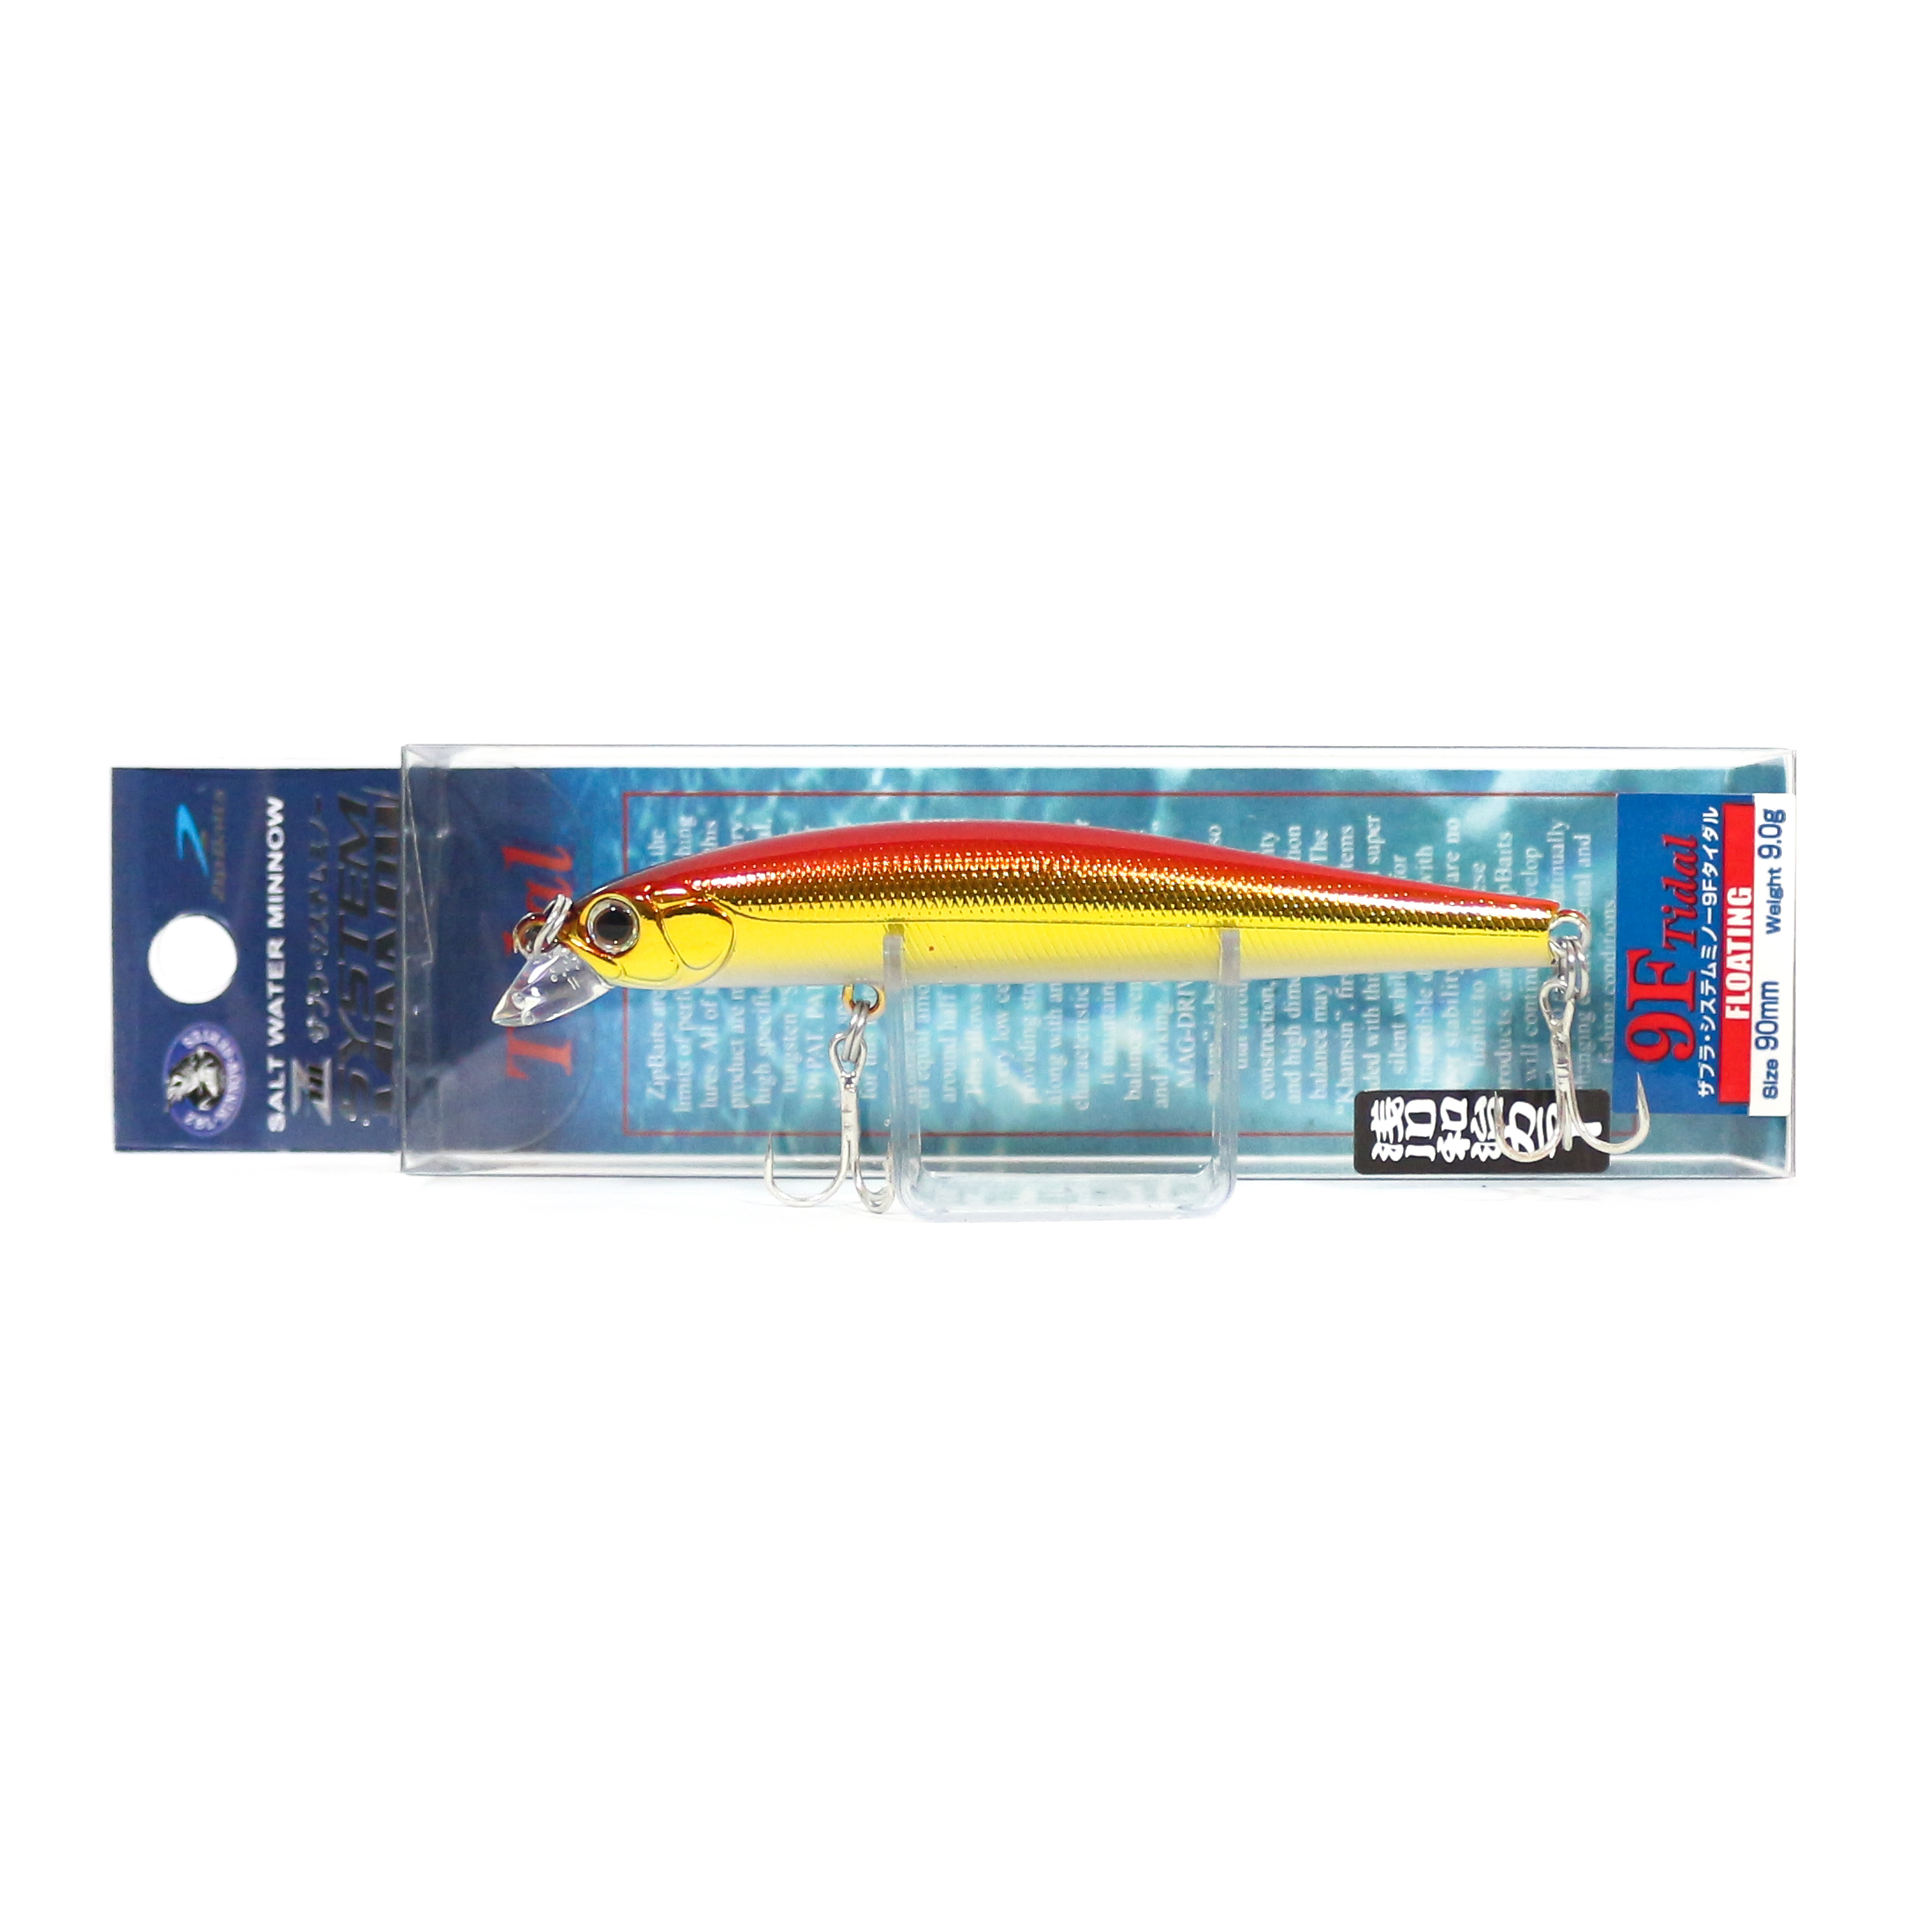 Zipbaits ZBL System Minnow 9F Tidal Floating Lure 703 (1029)